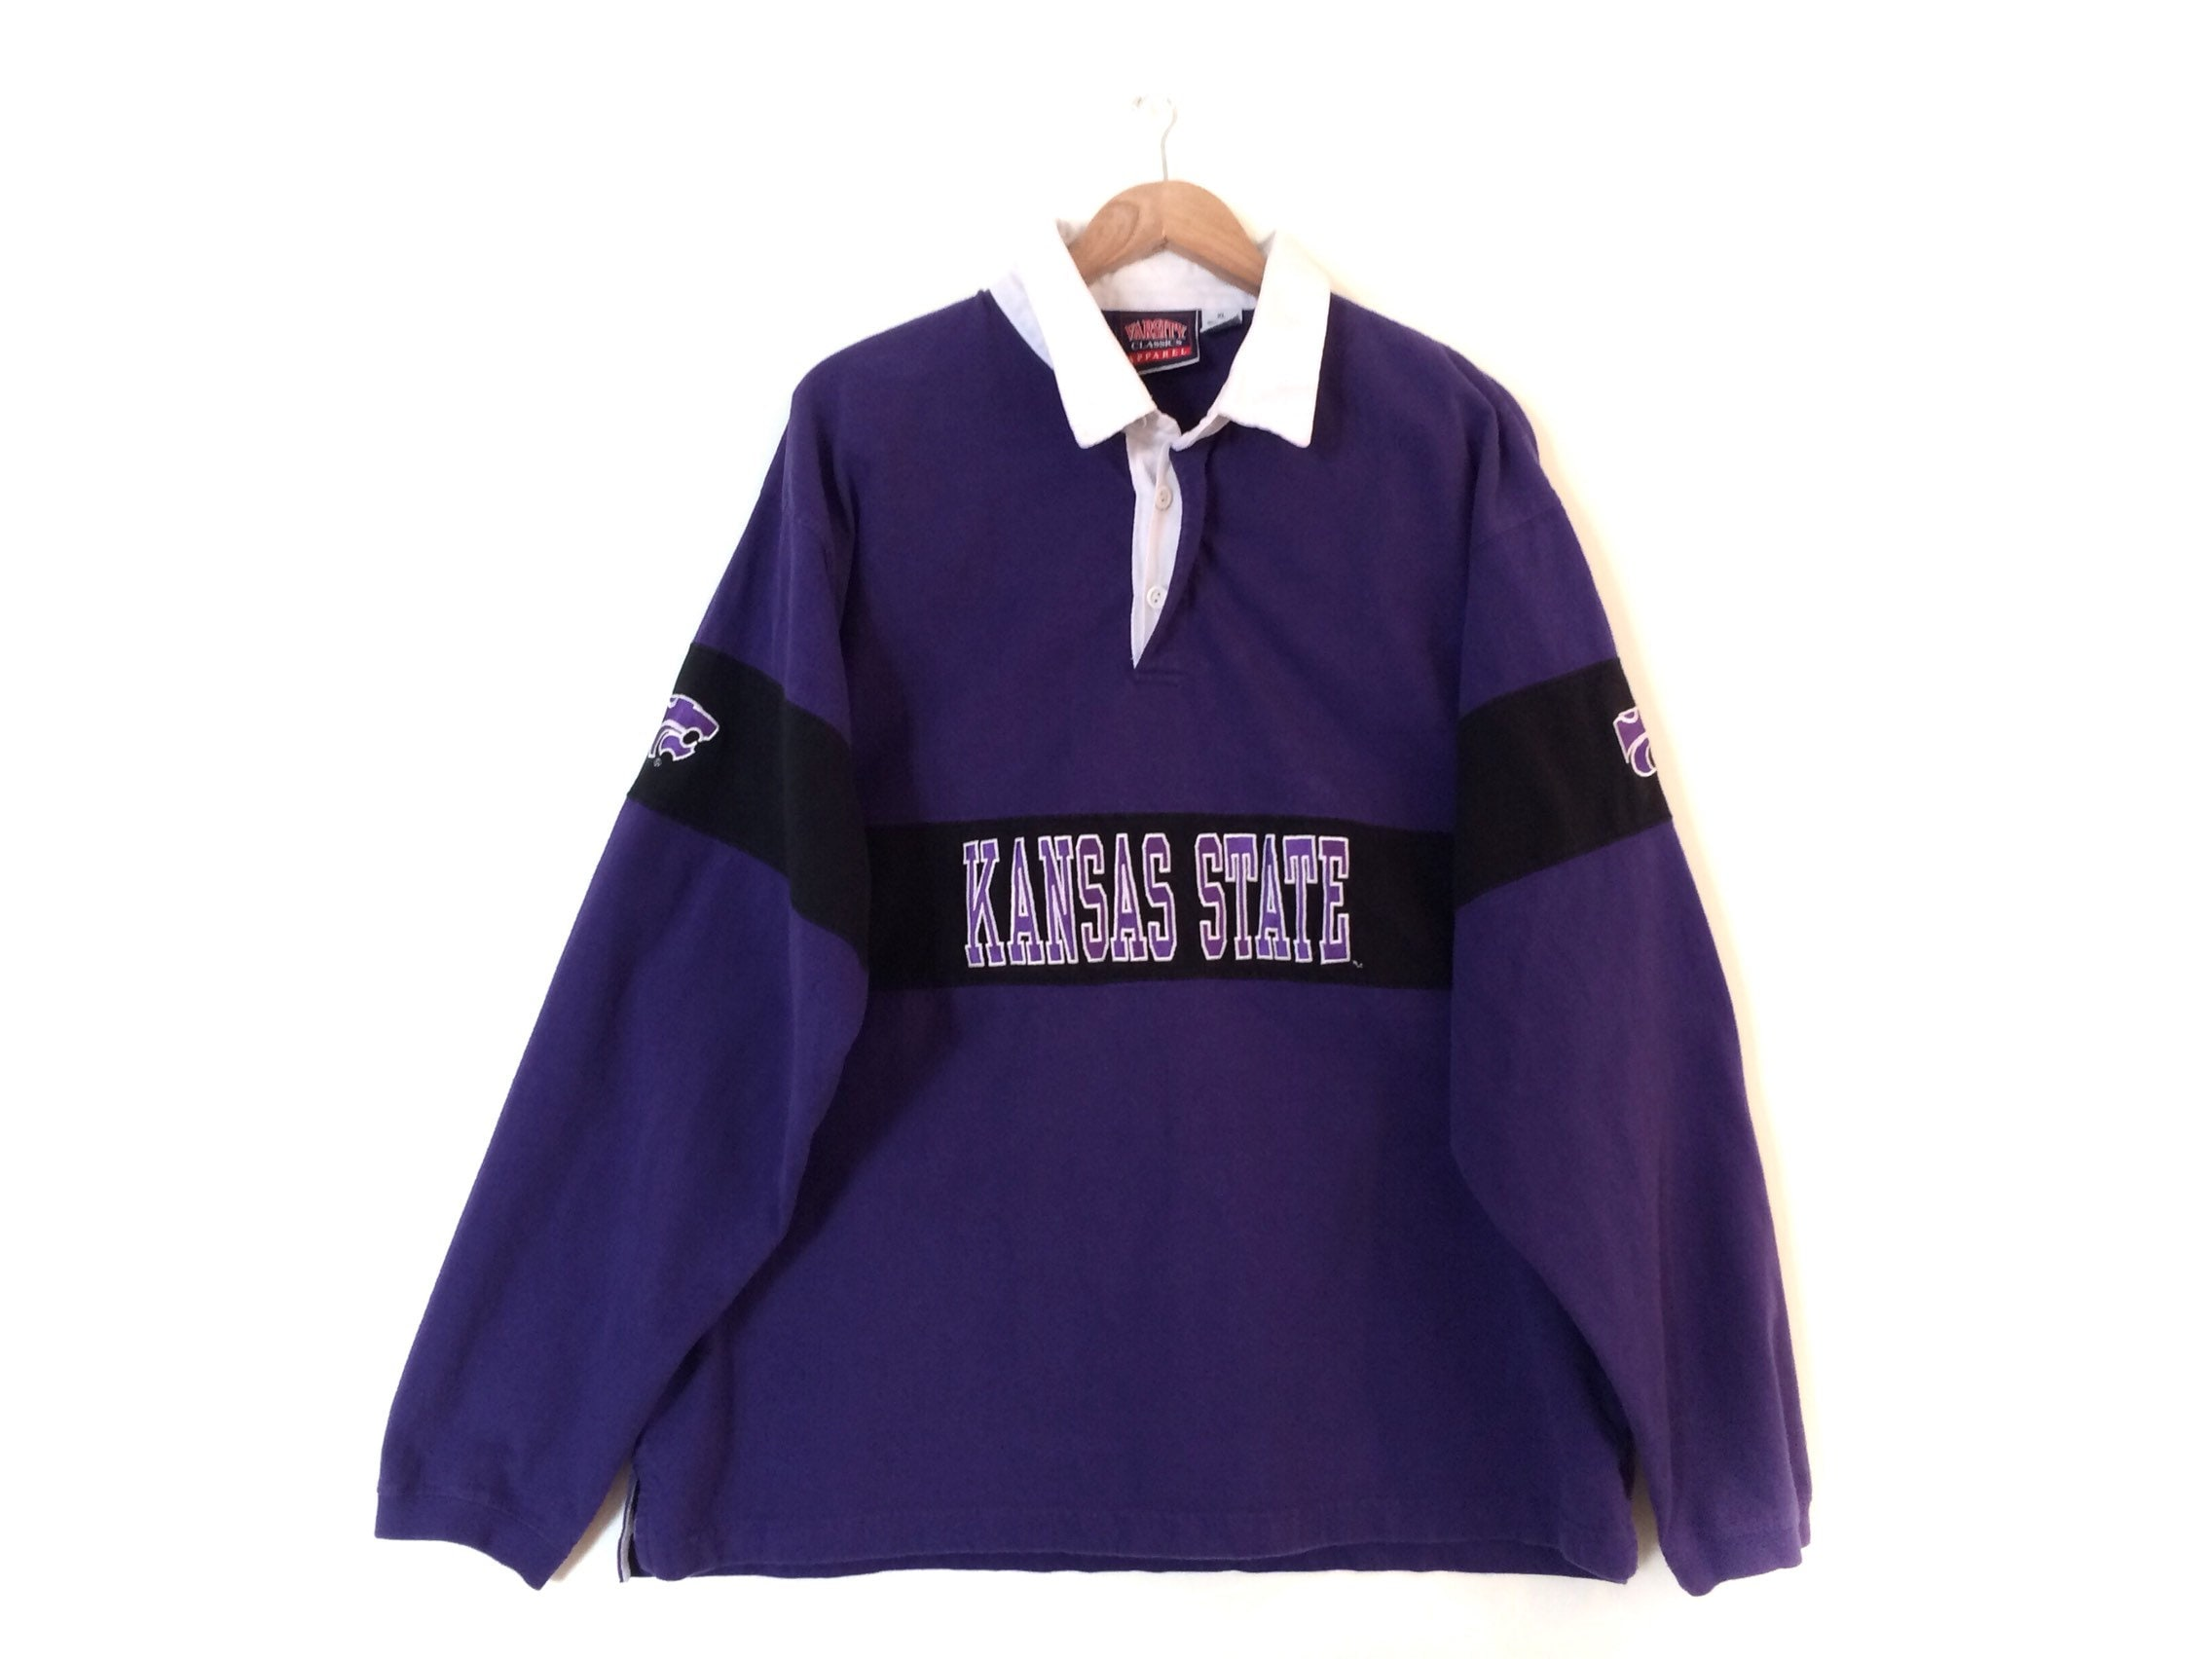 Vintage K State Rugby Polo Shirt Retro Kansas State Rugby Etsy